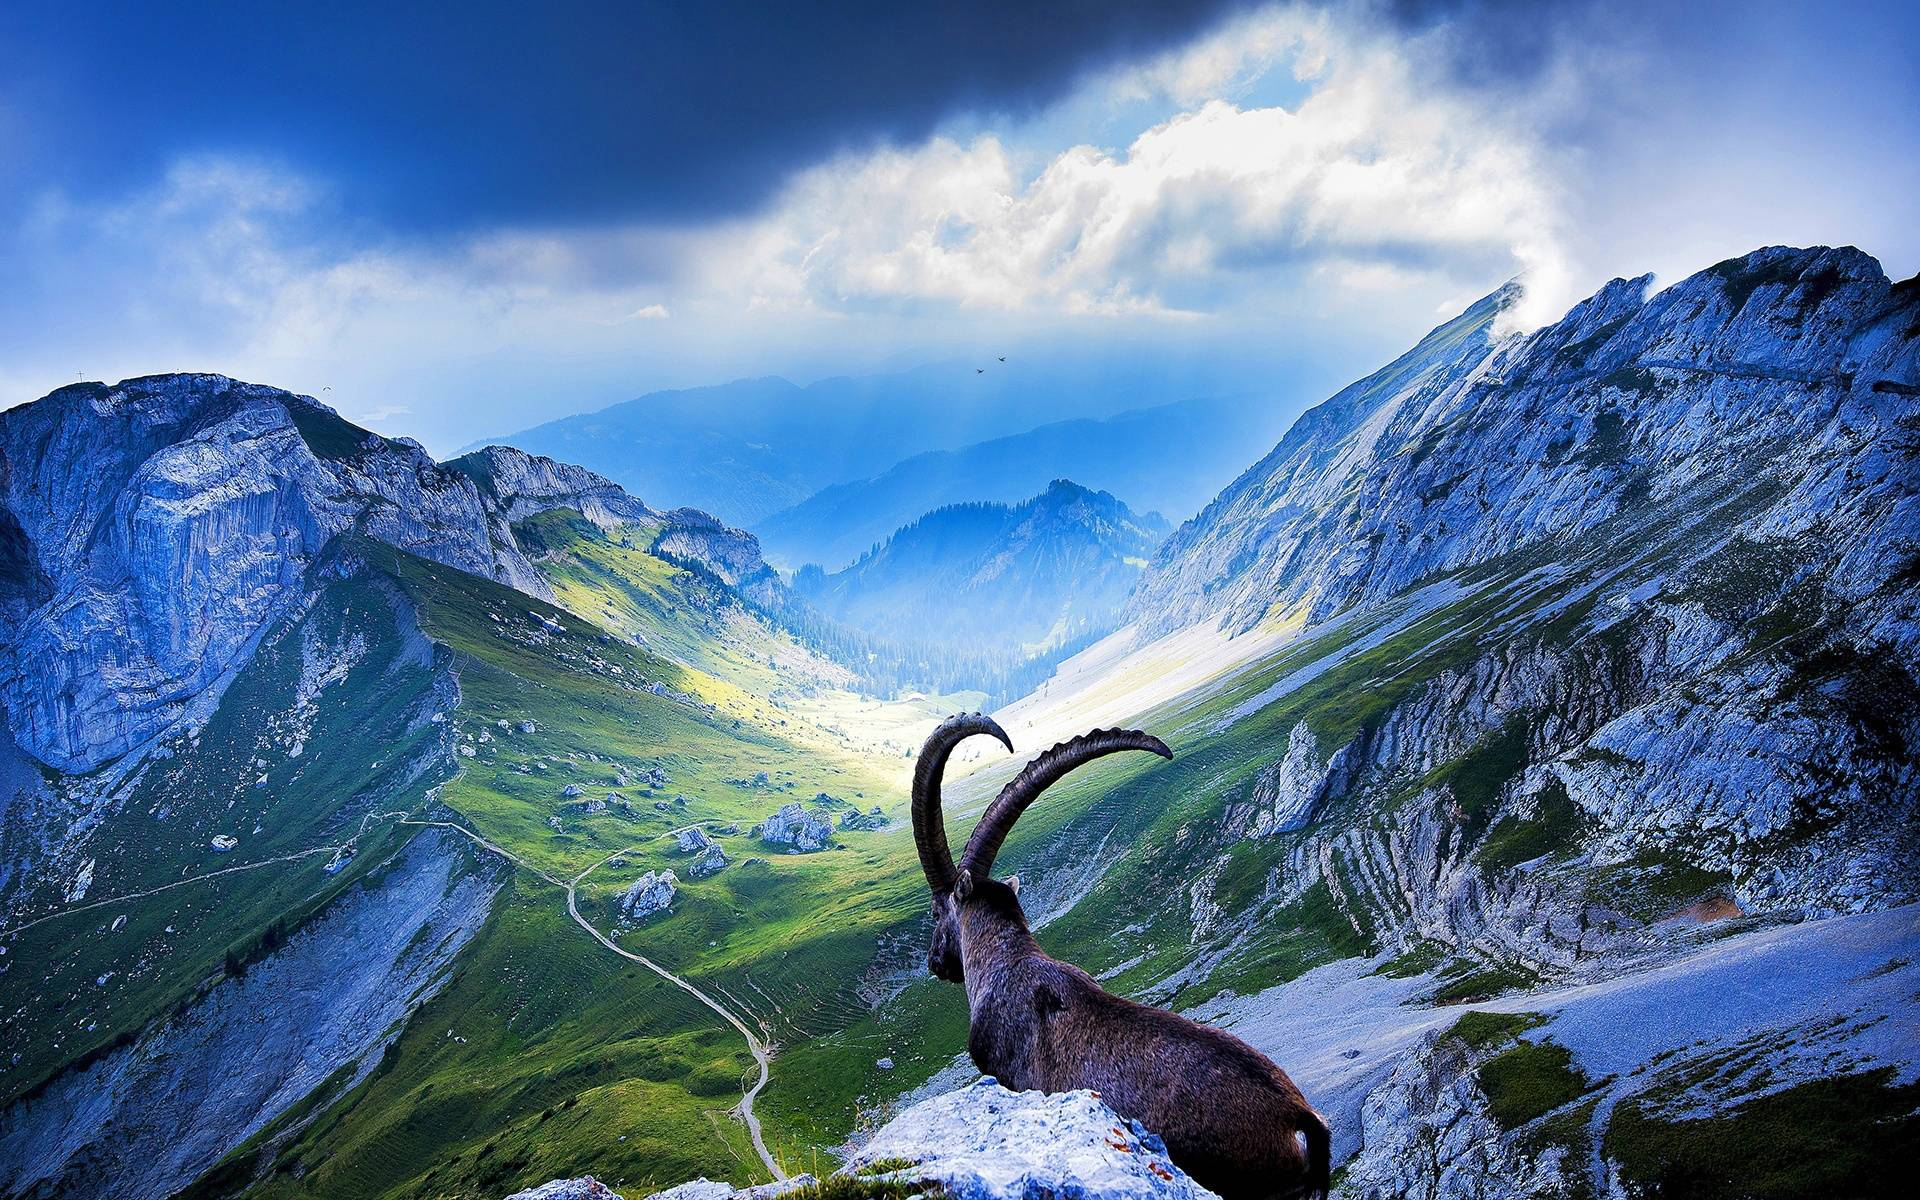 Switzerland Wallpapers - Full HD wallpaper search